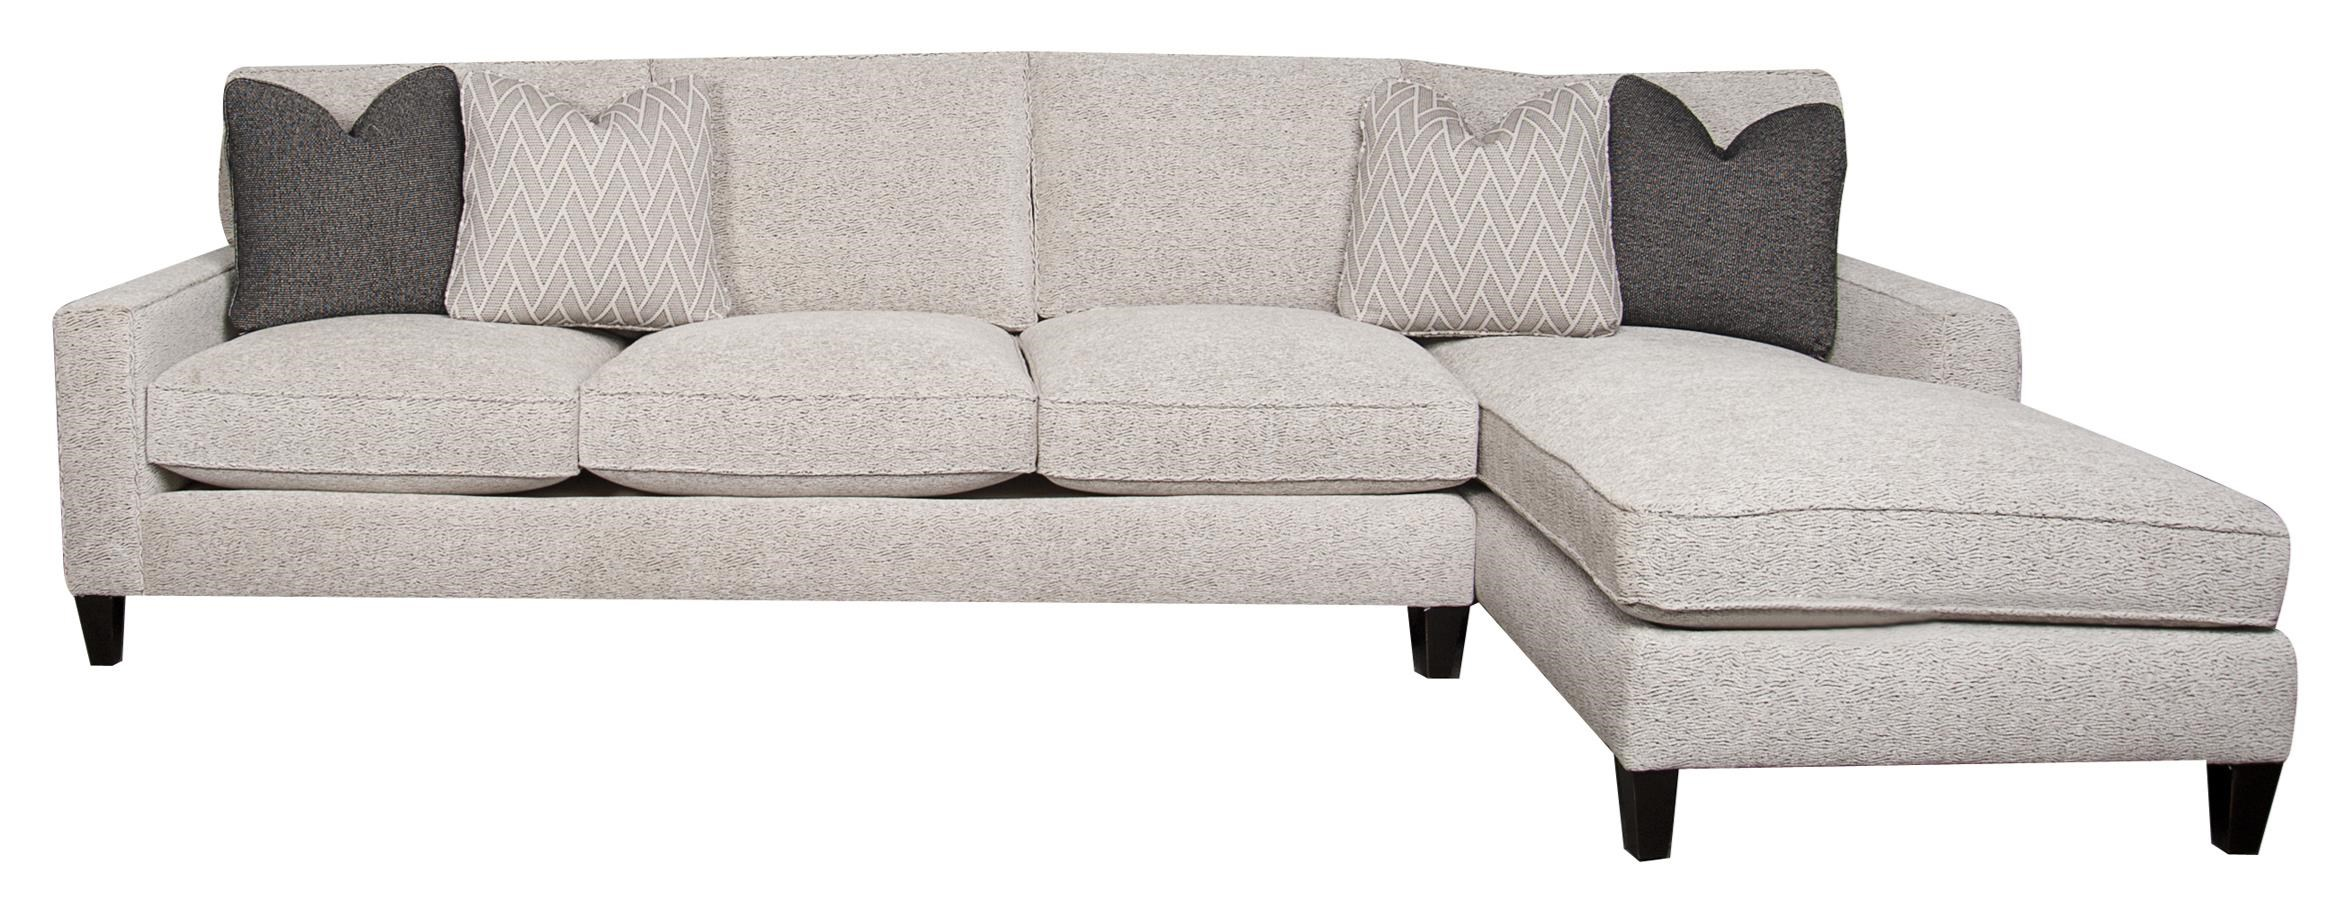 Sectional Sofa Chaise With Accent Pillows